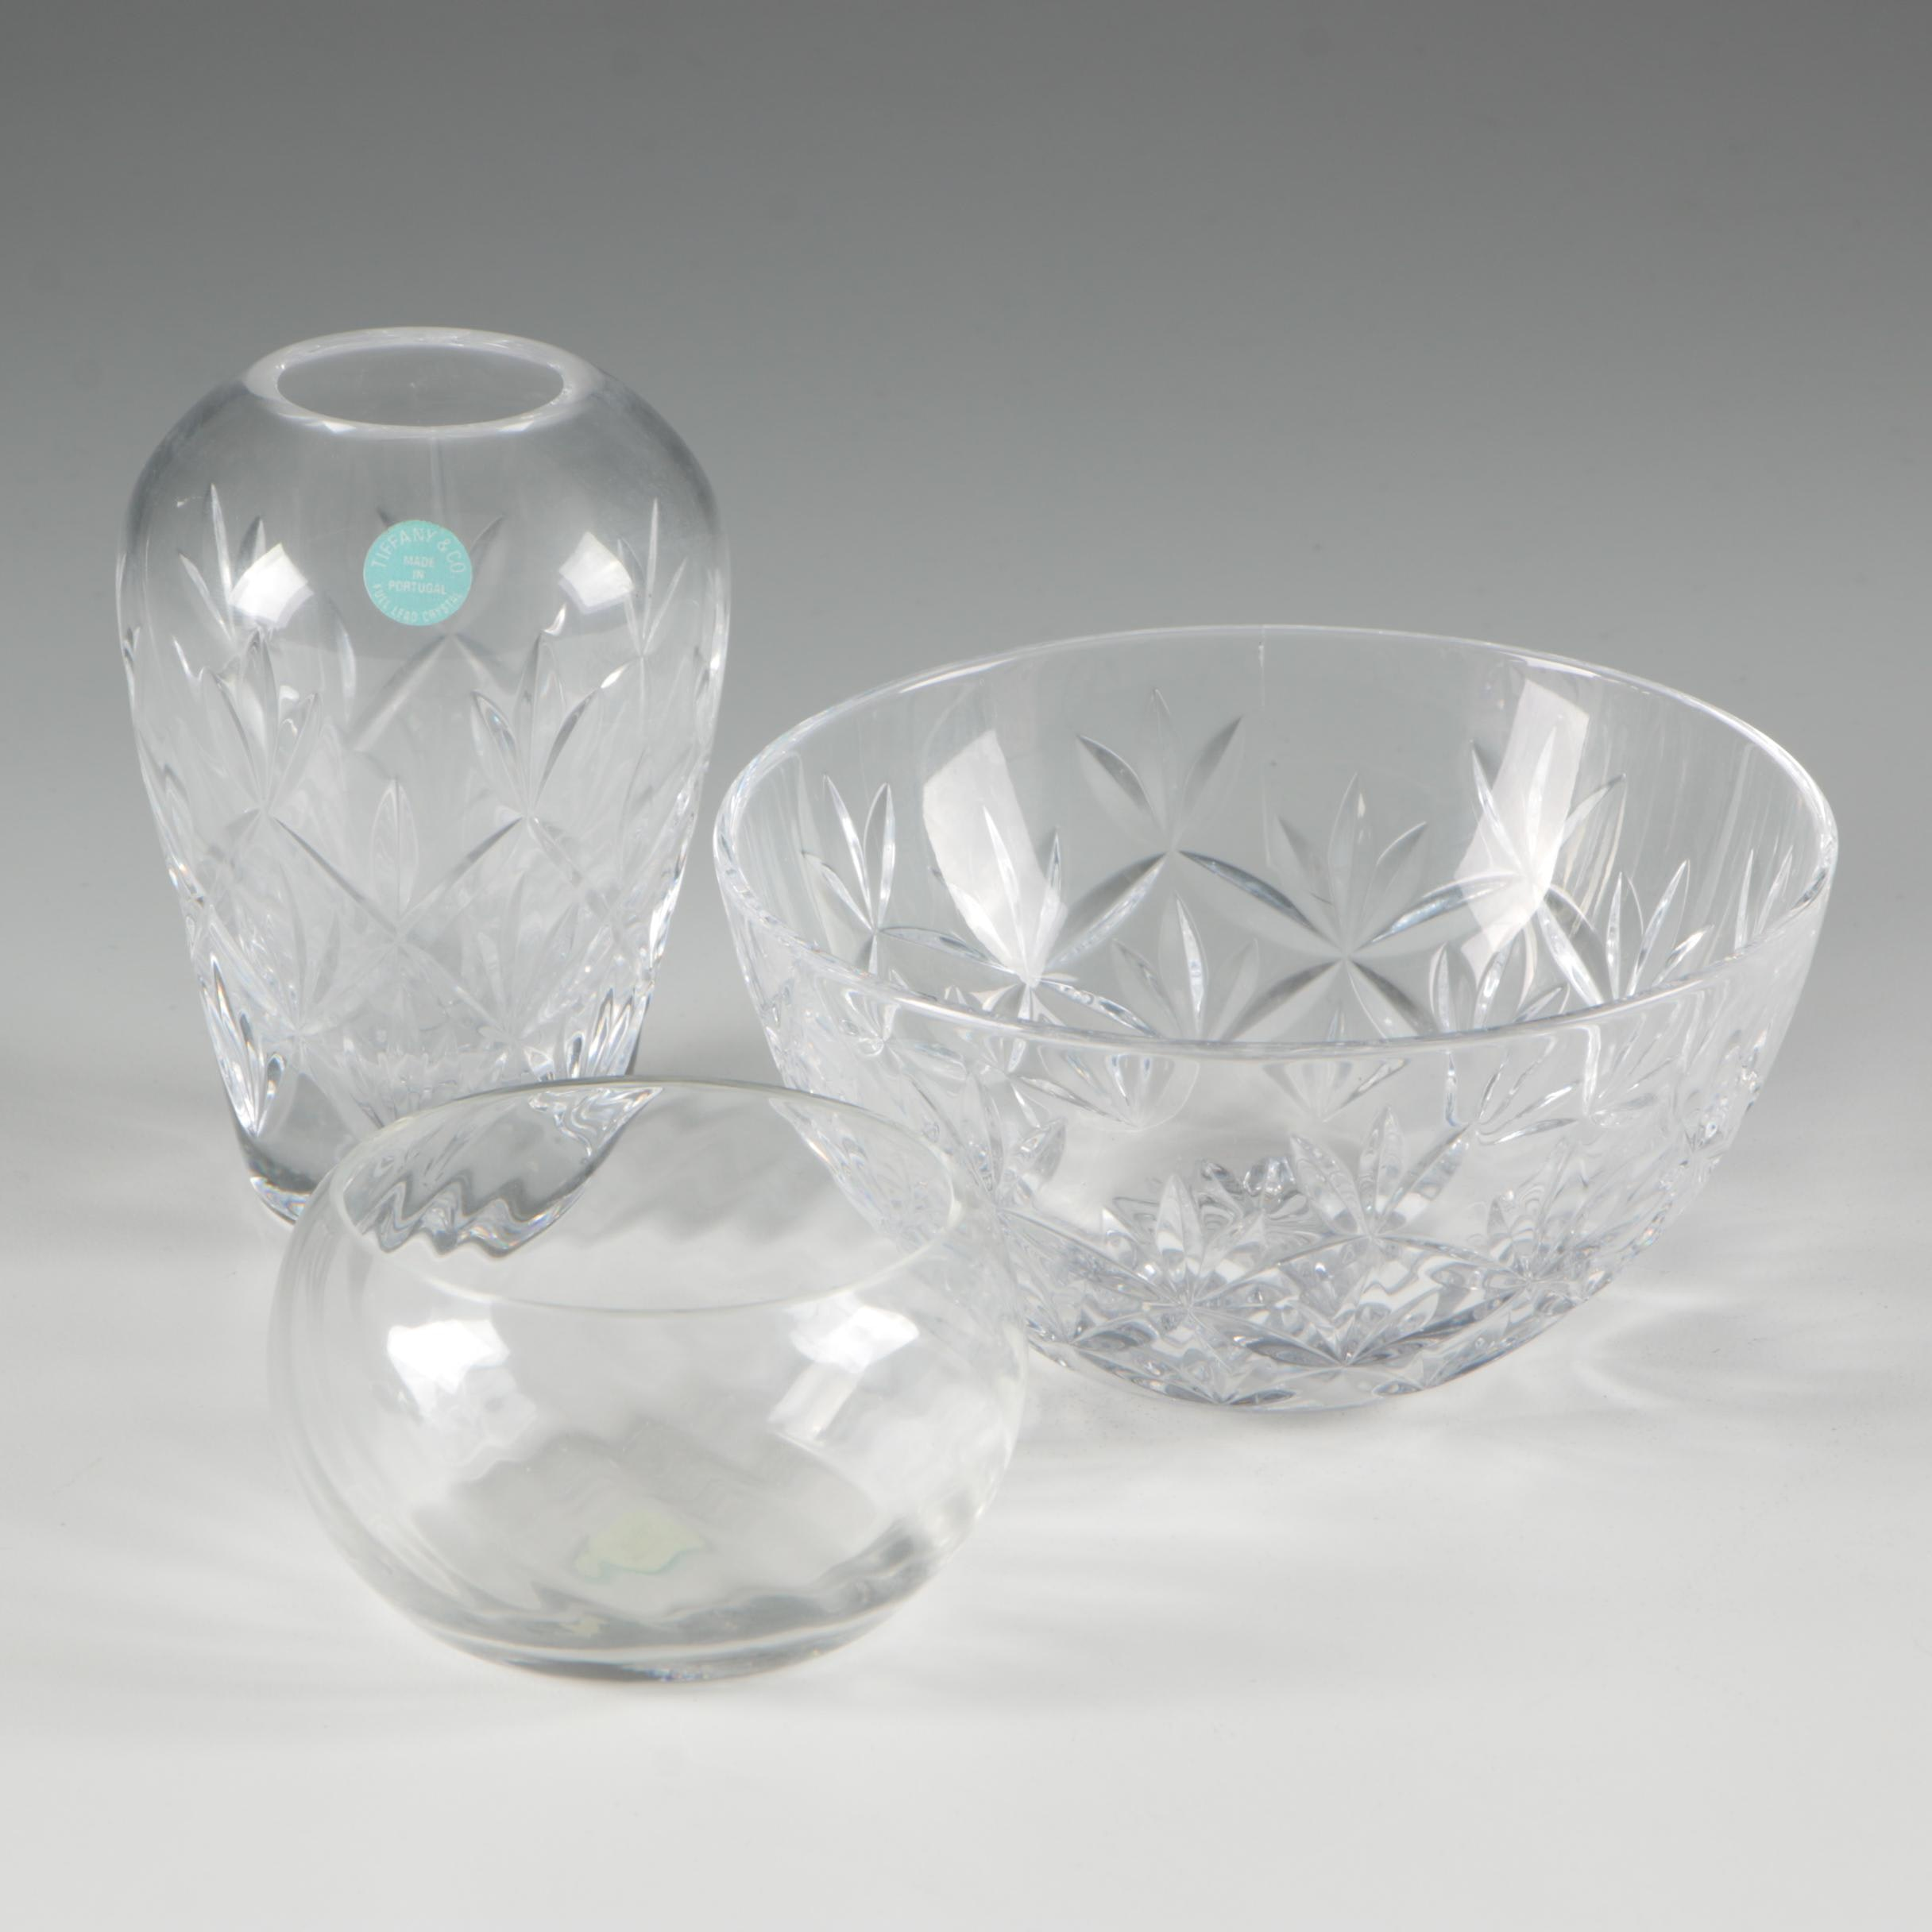 Tiffany & Co. Crystal Bud Vase and Bowls